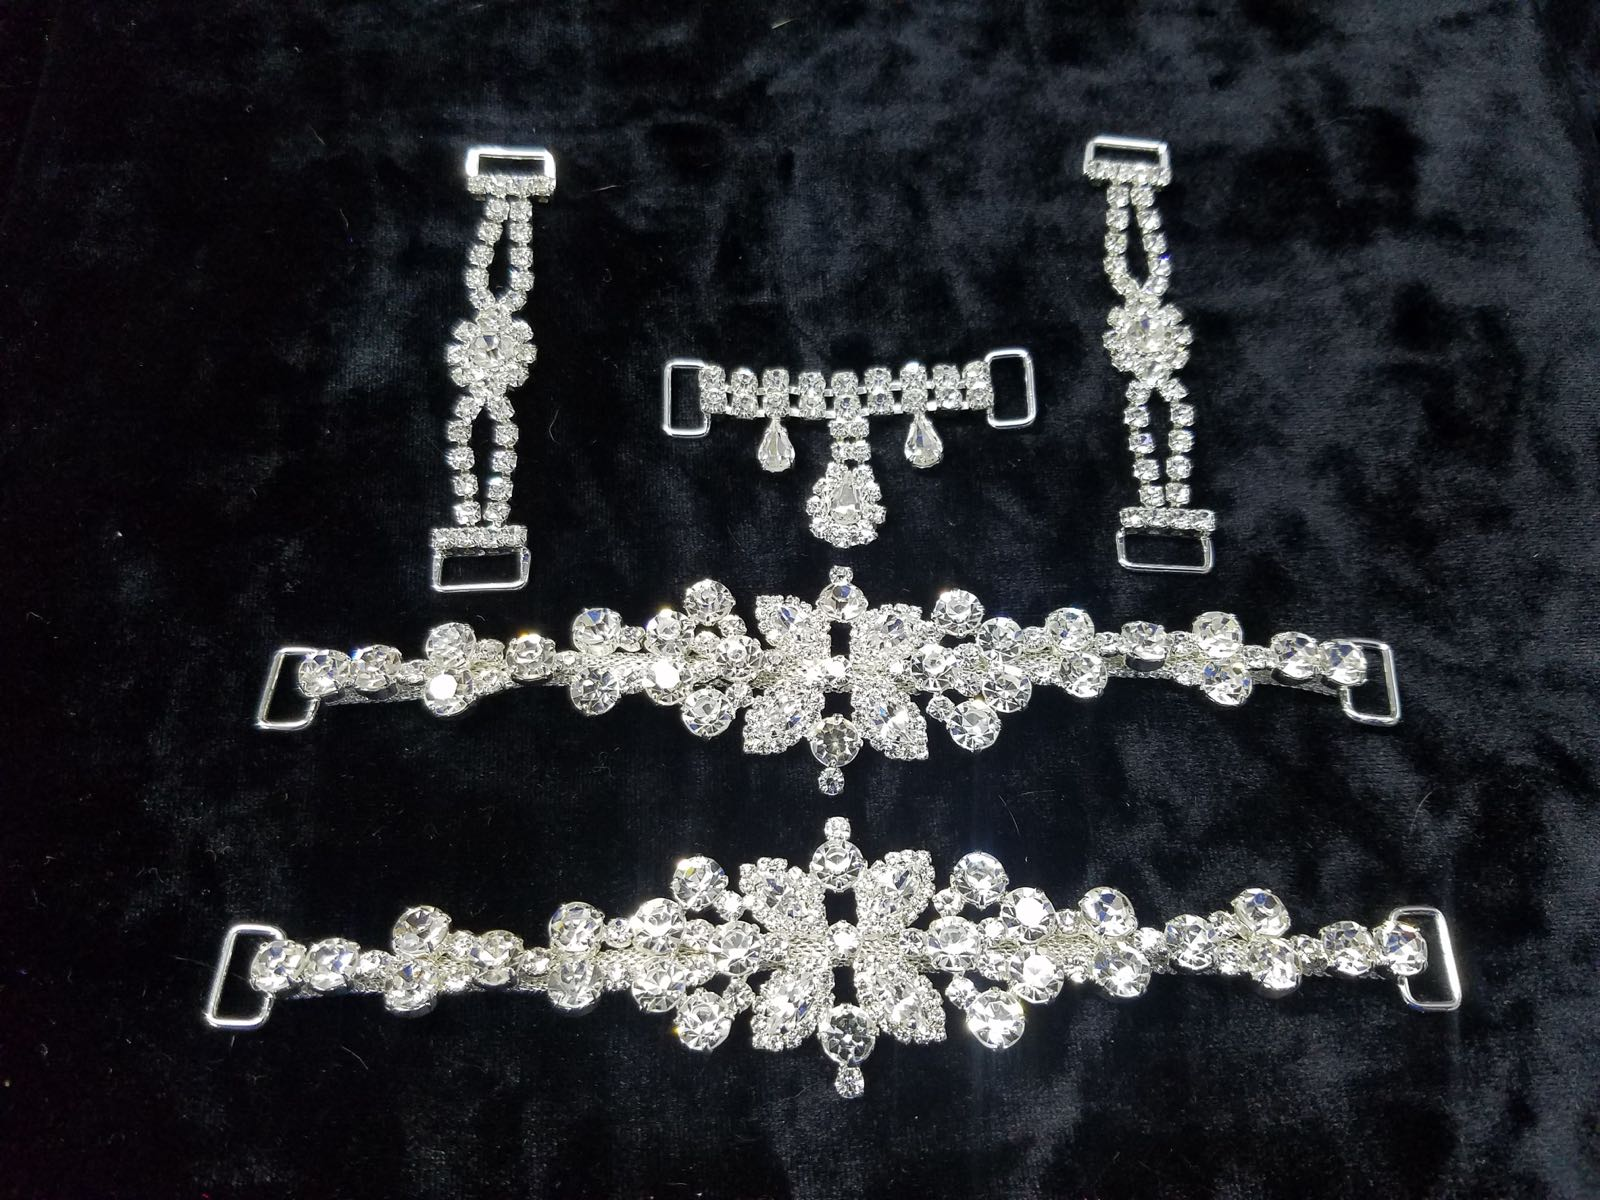 Set L , Silver with clear crystals, $116.00